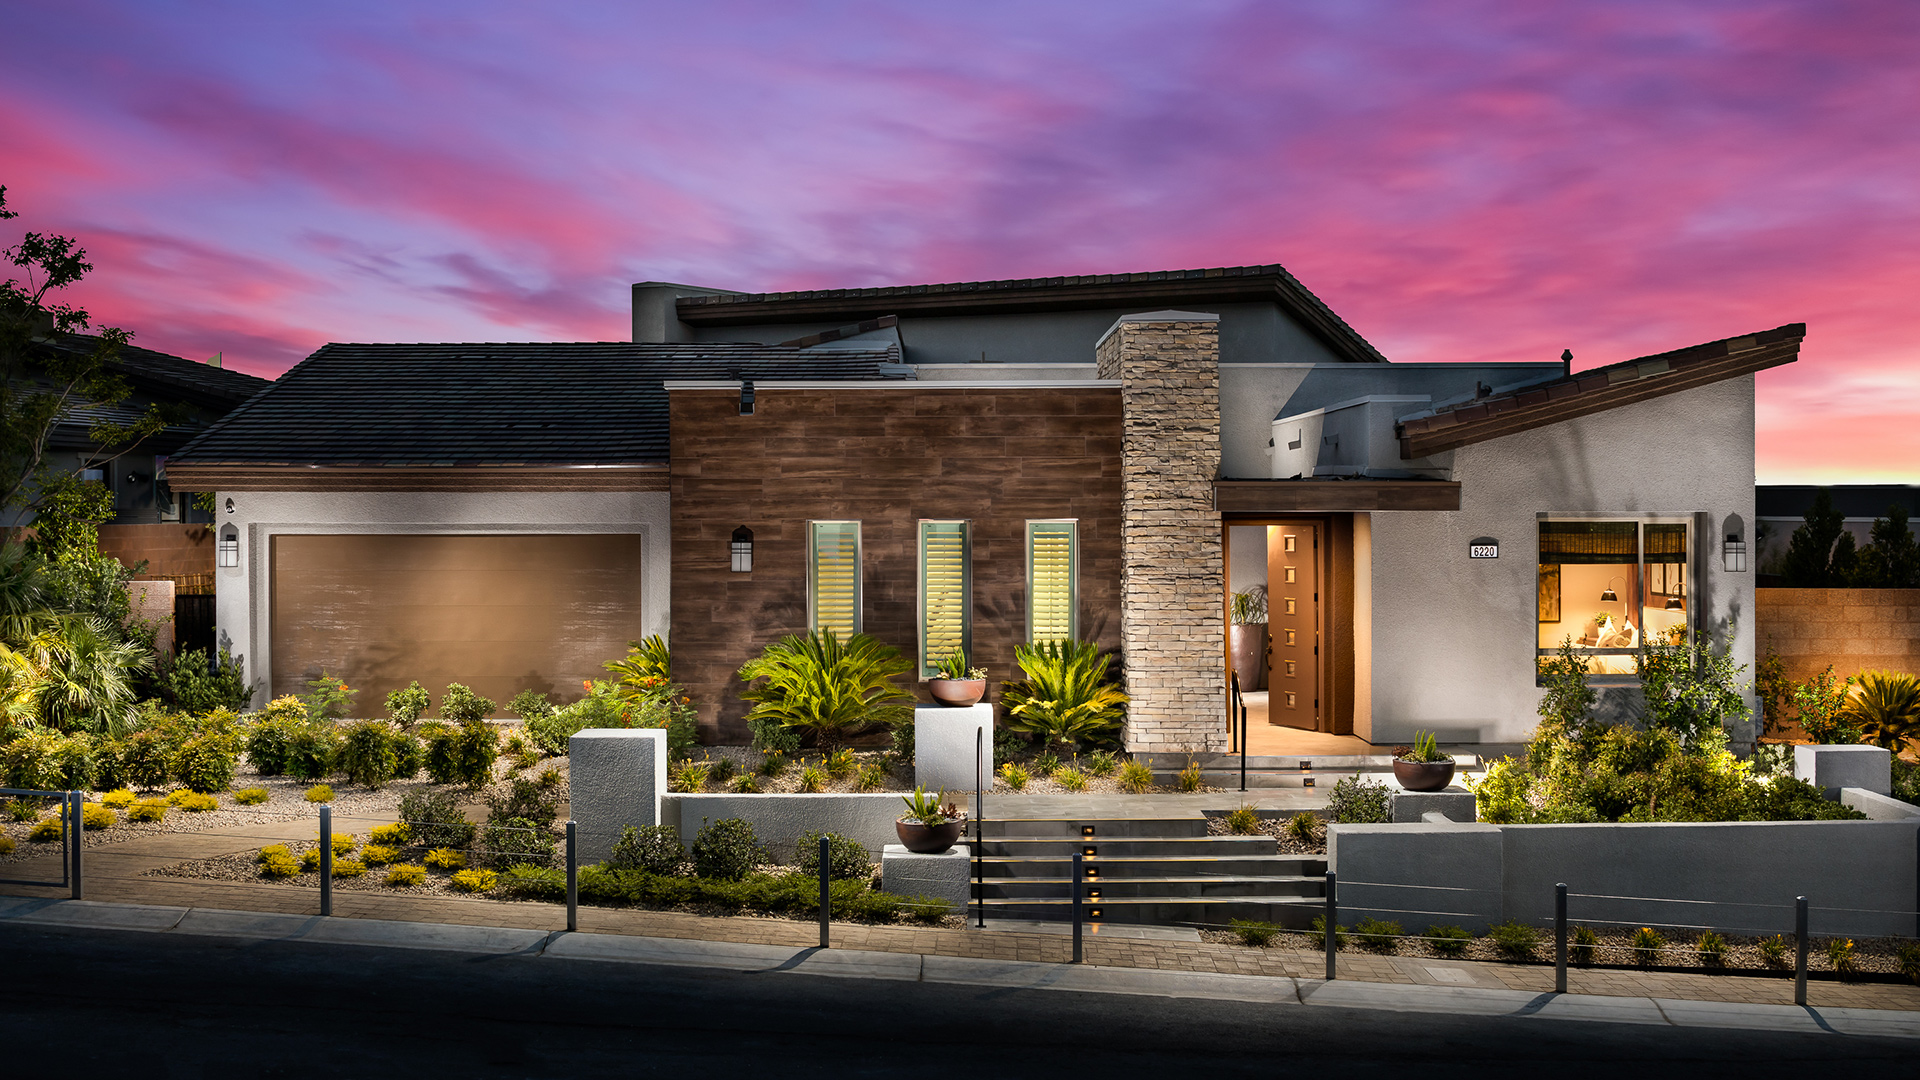 Homes For Sale In Southwest Las Vegas Las Vegas Nv New Homes For Sale Granite Heights